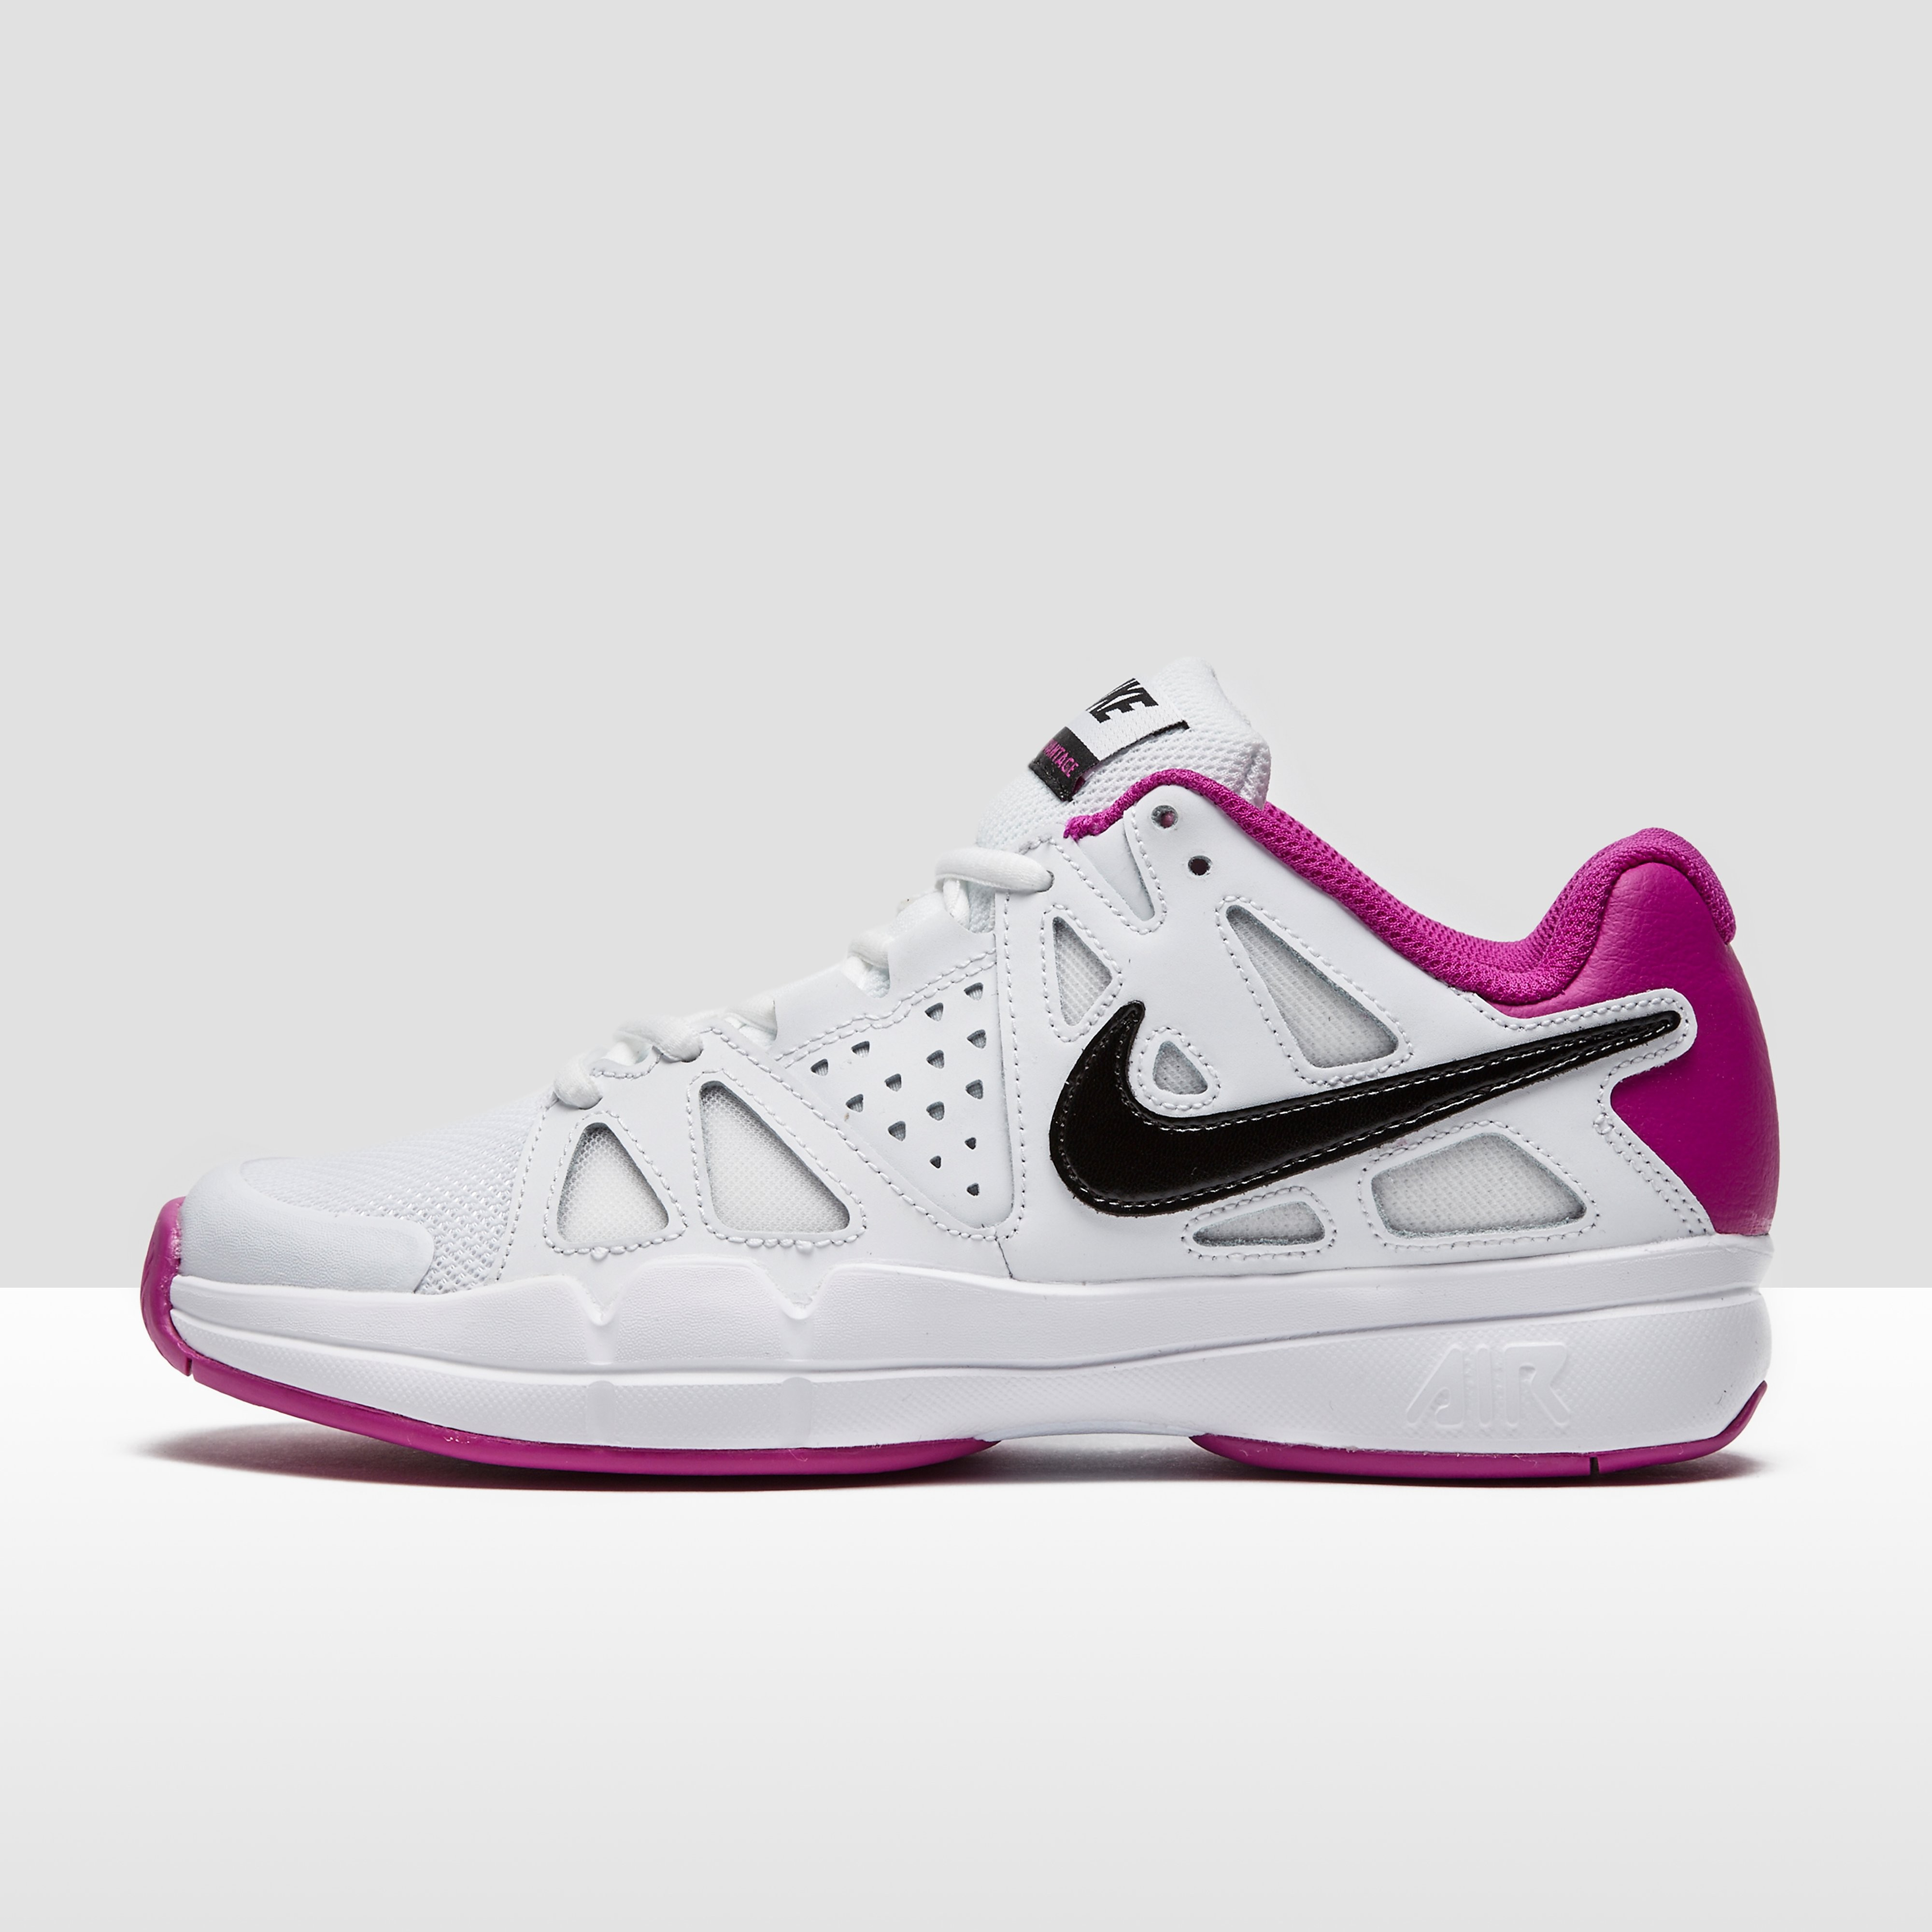 Nike Court Air Vapor Advantage Women's Tennis Shoes